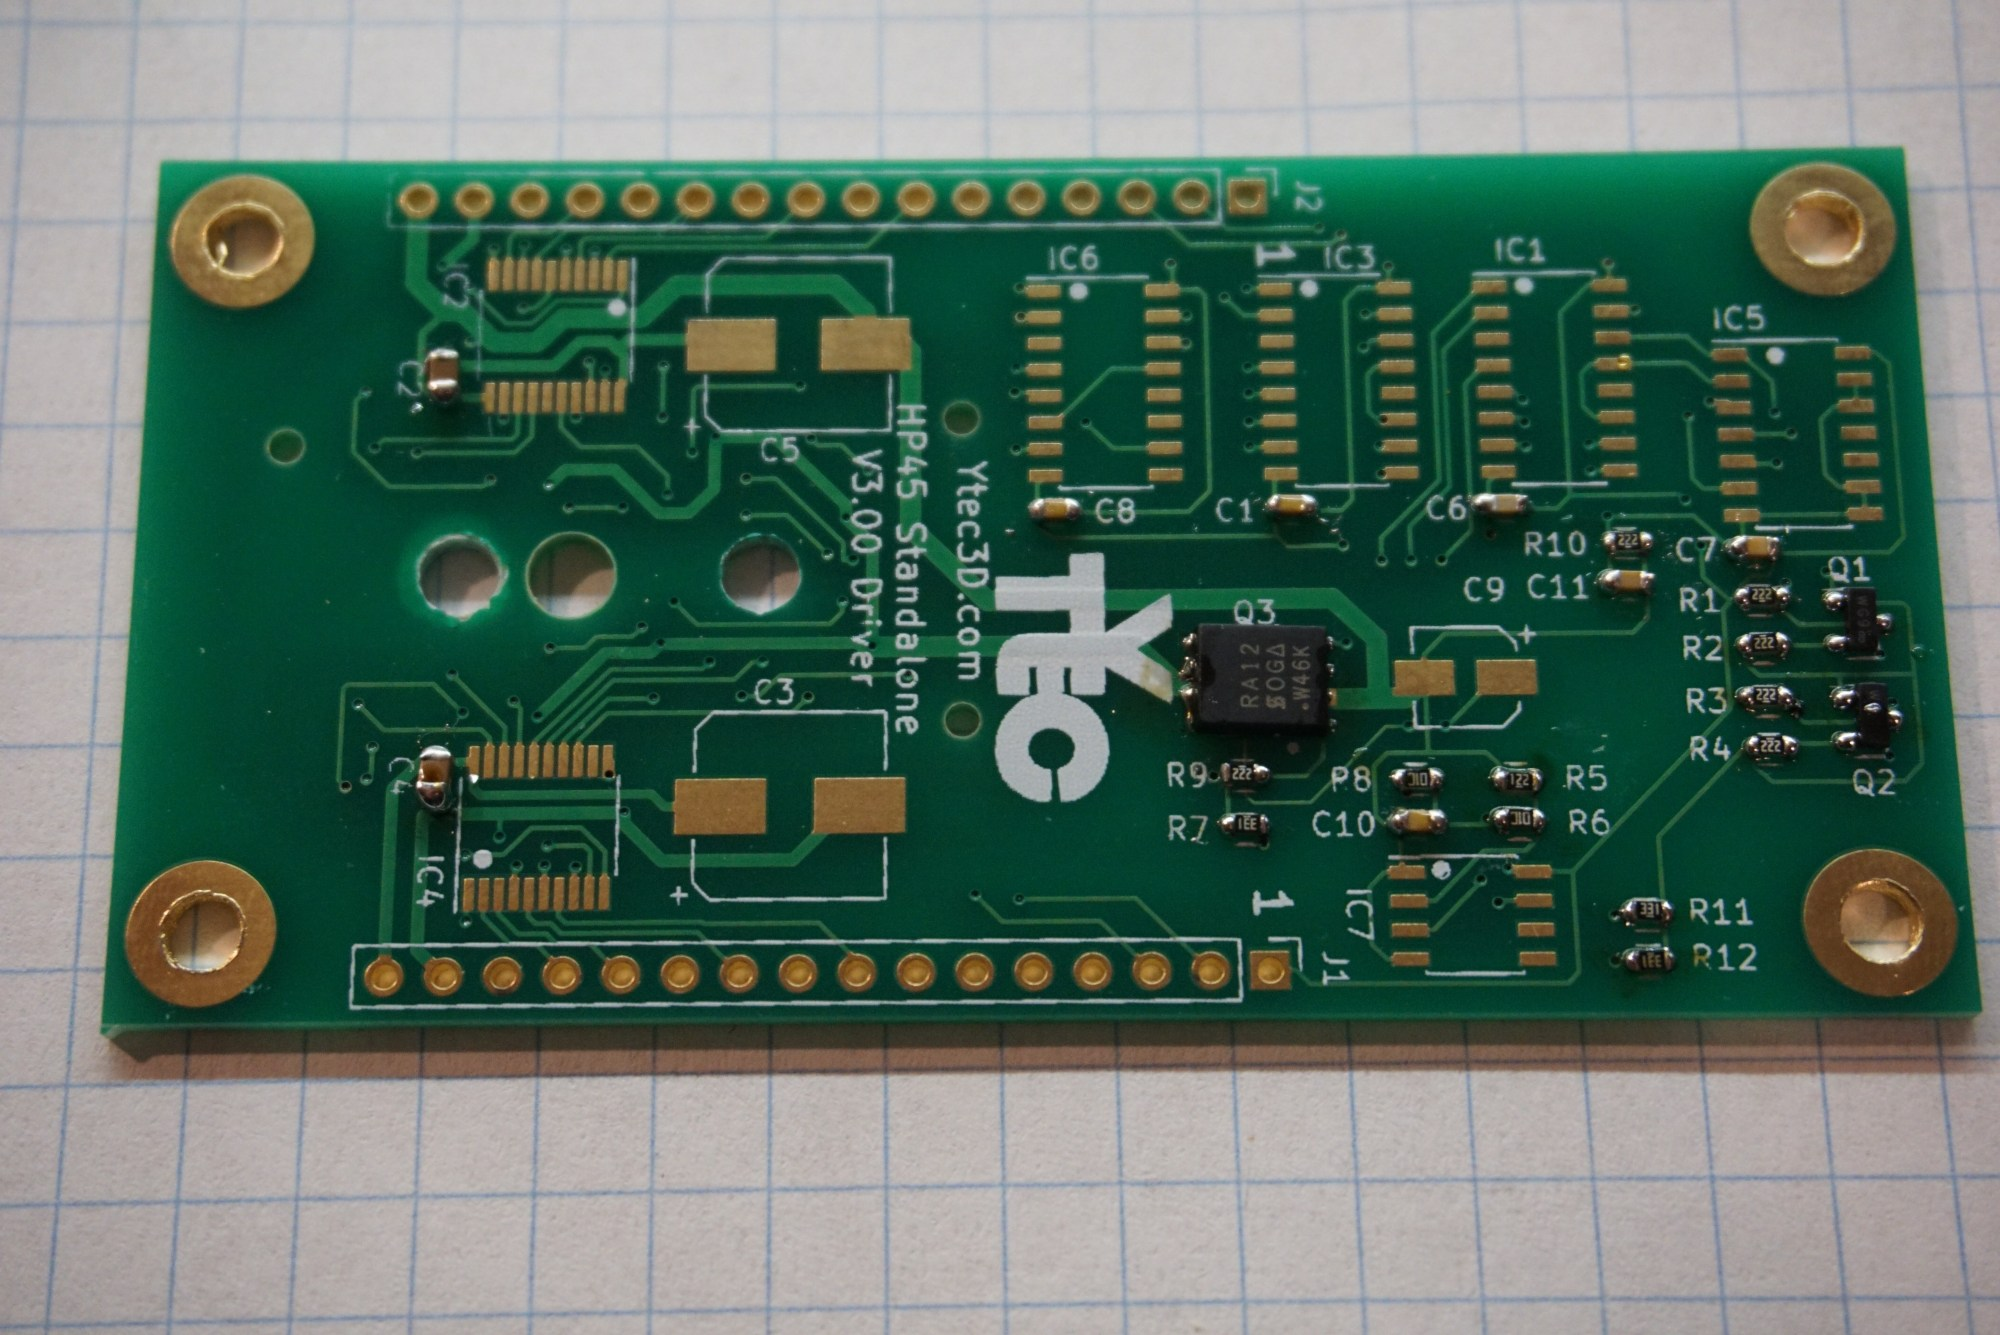 hight resolution of the ic s are plentiful on the driver board ic1 ic3 ic6 are hef4017 with package soic 16 3 9mm the exact 4017 is not important only that it is at least